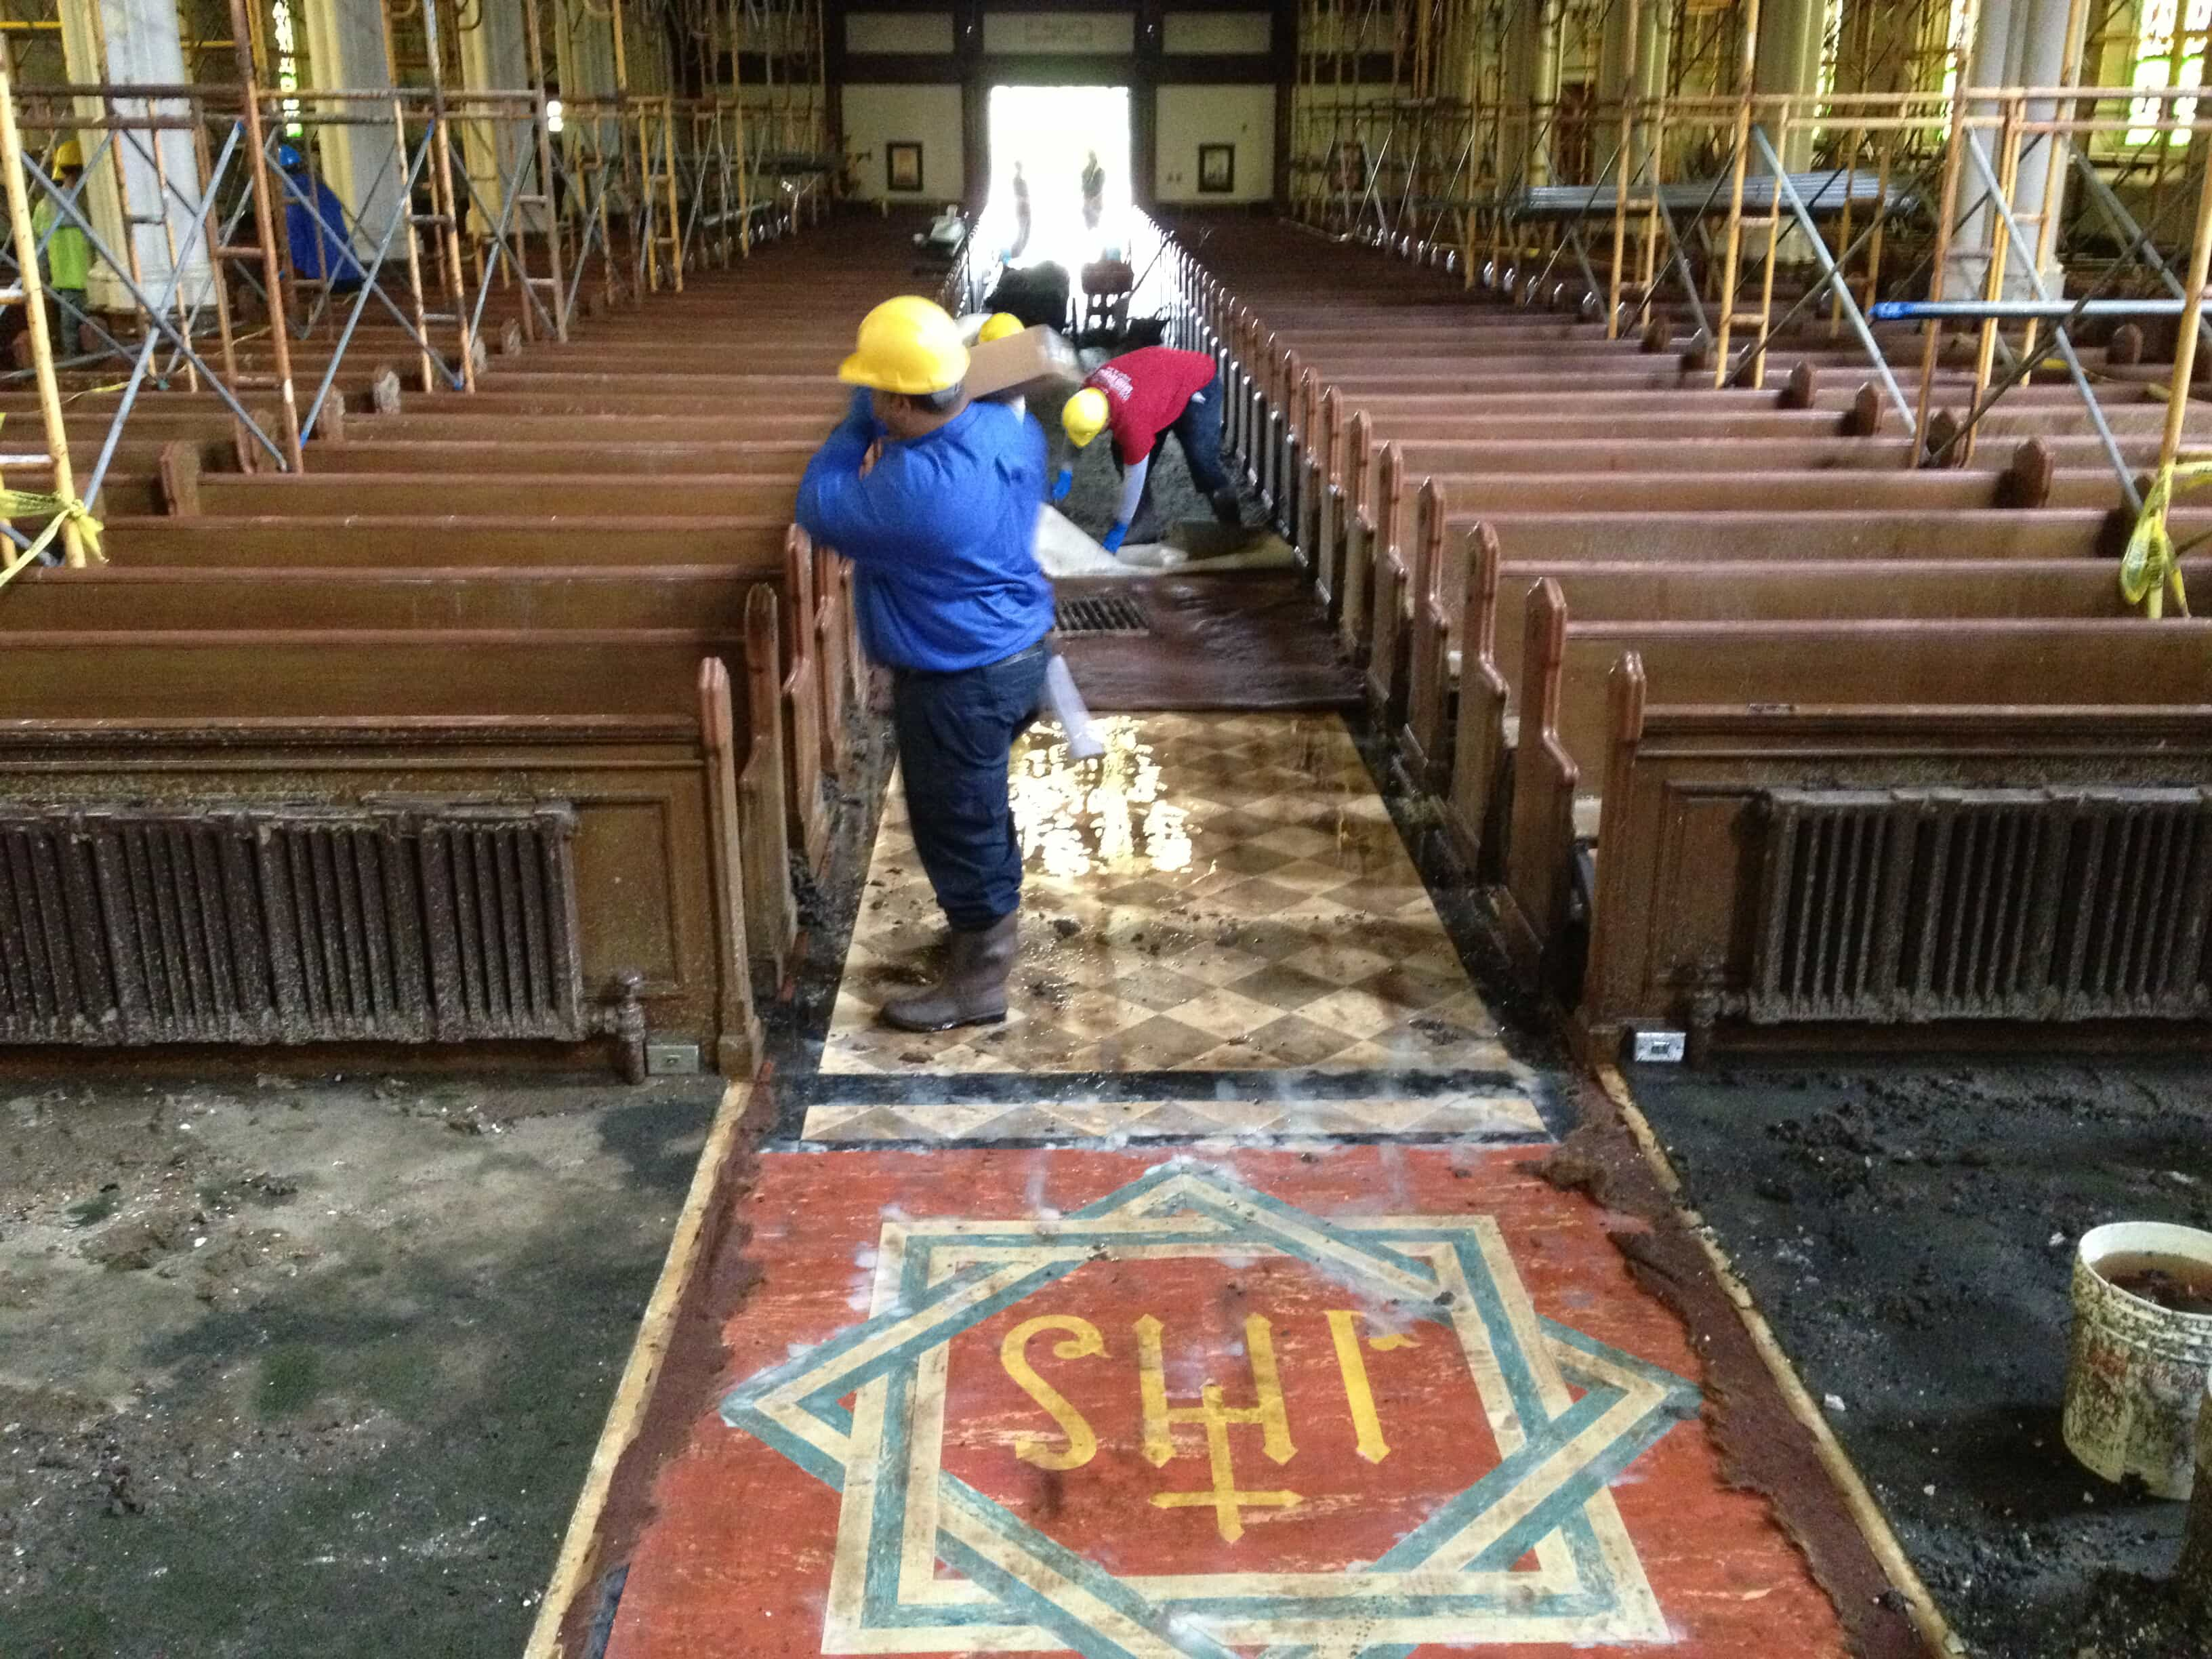 Construction in a church